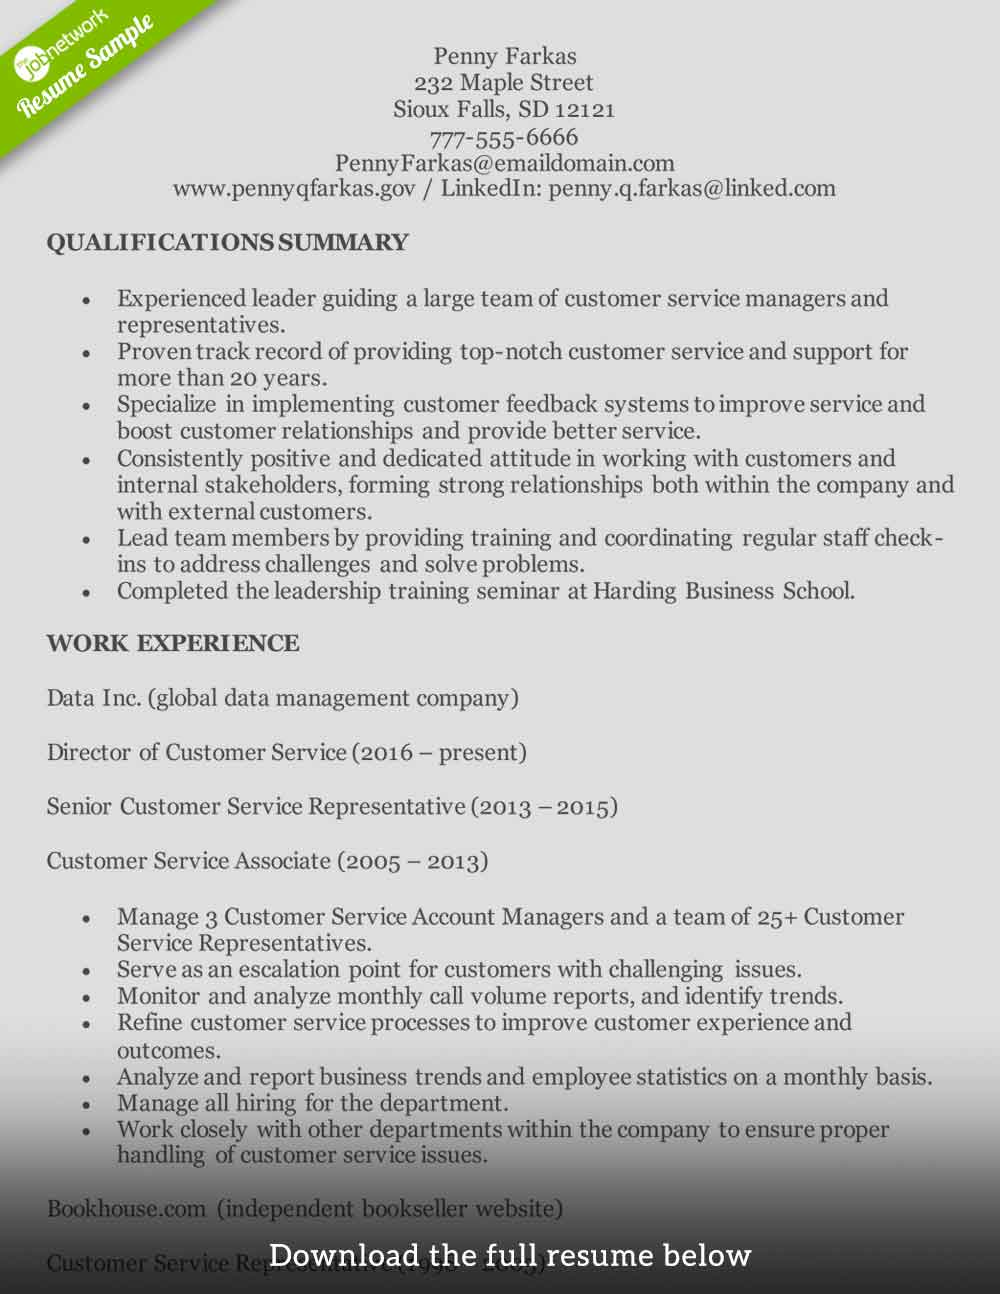 customer service resume to write the perfect one examples upwardly global template Resume Upwardly Global Resume Template